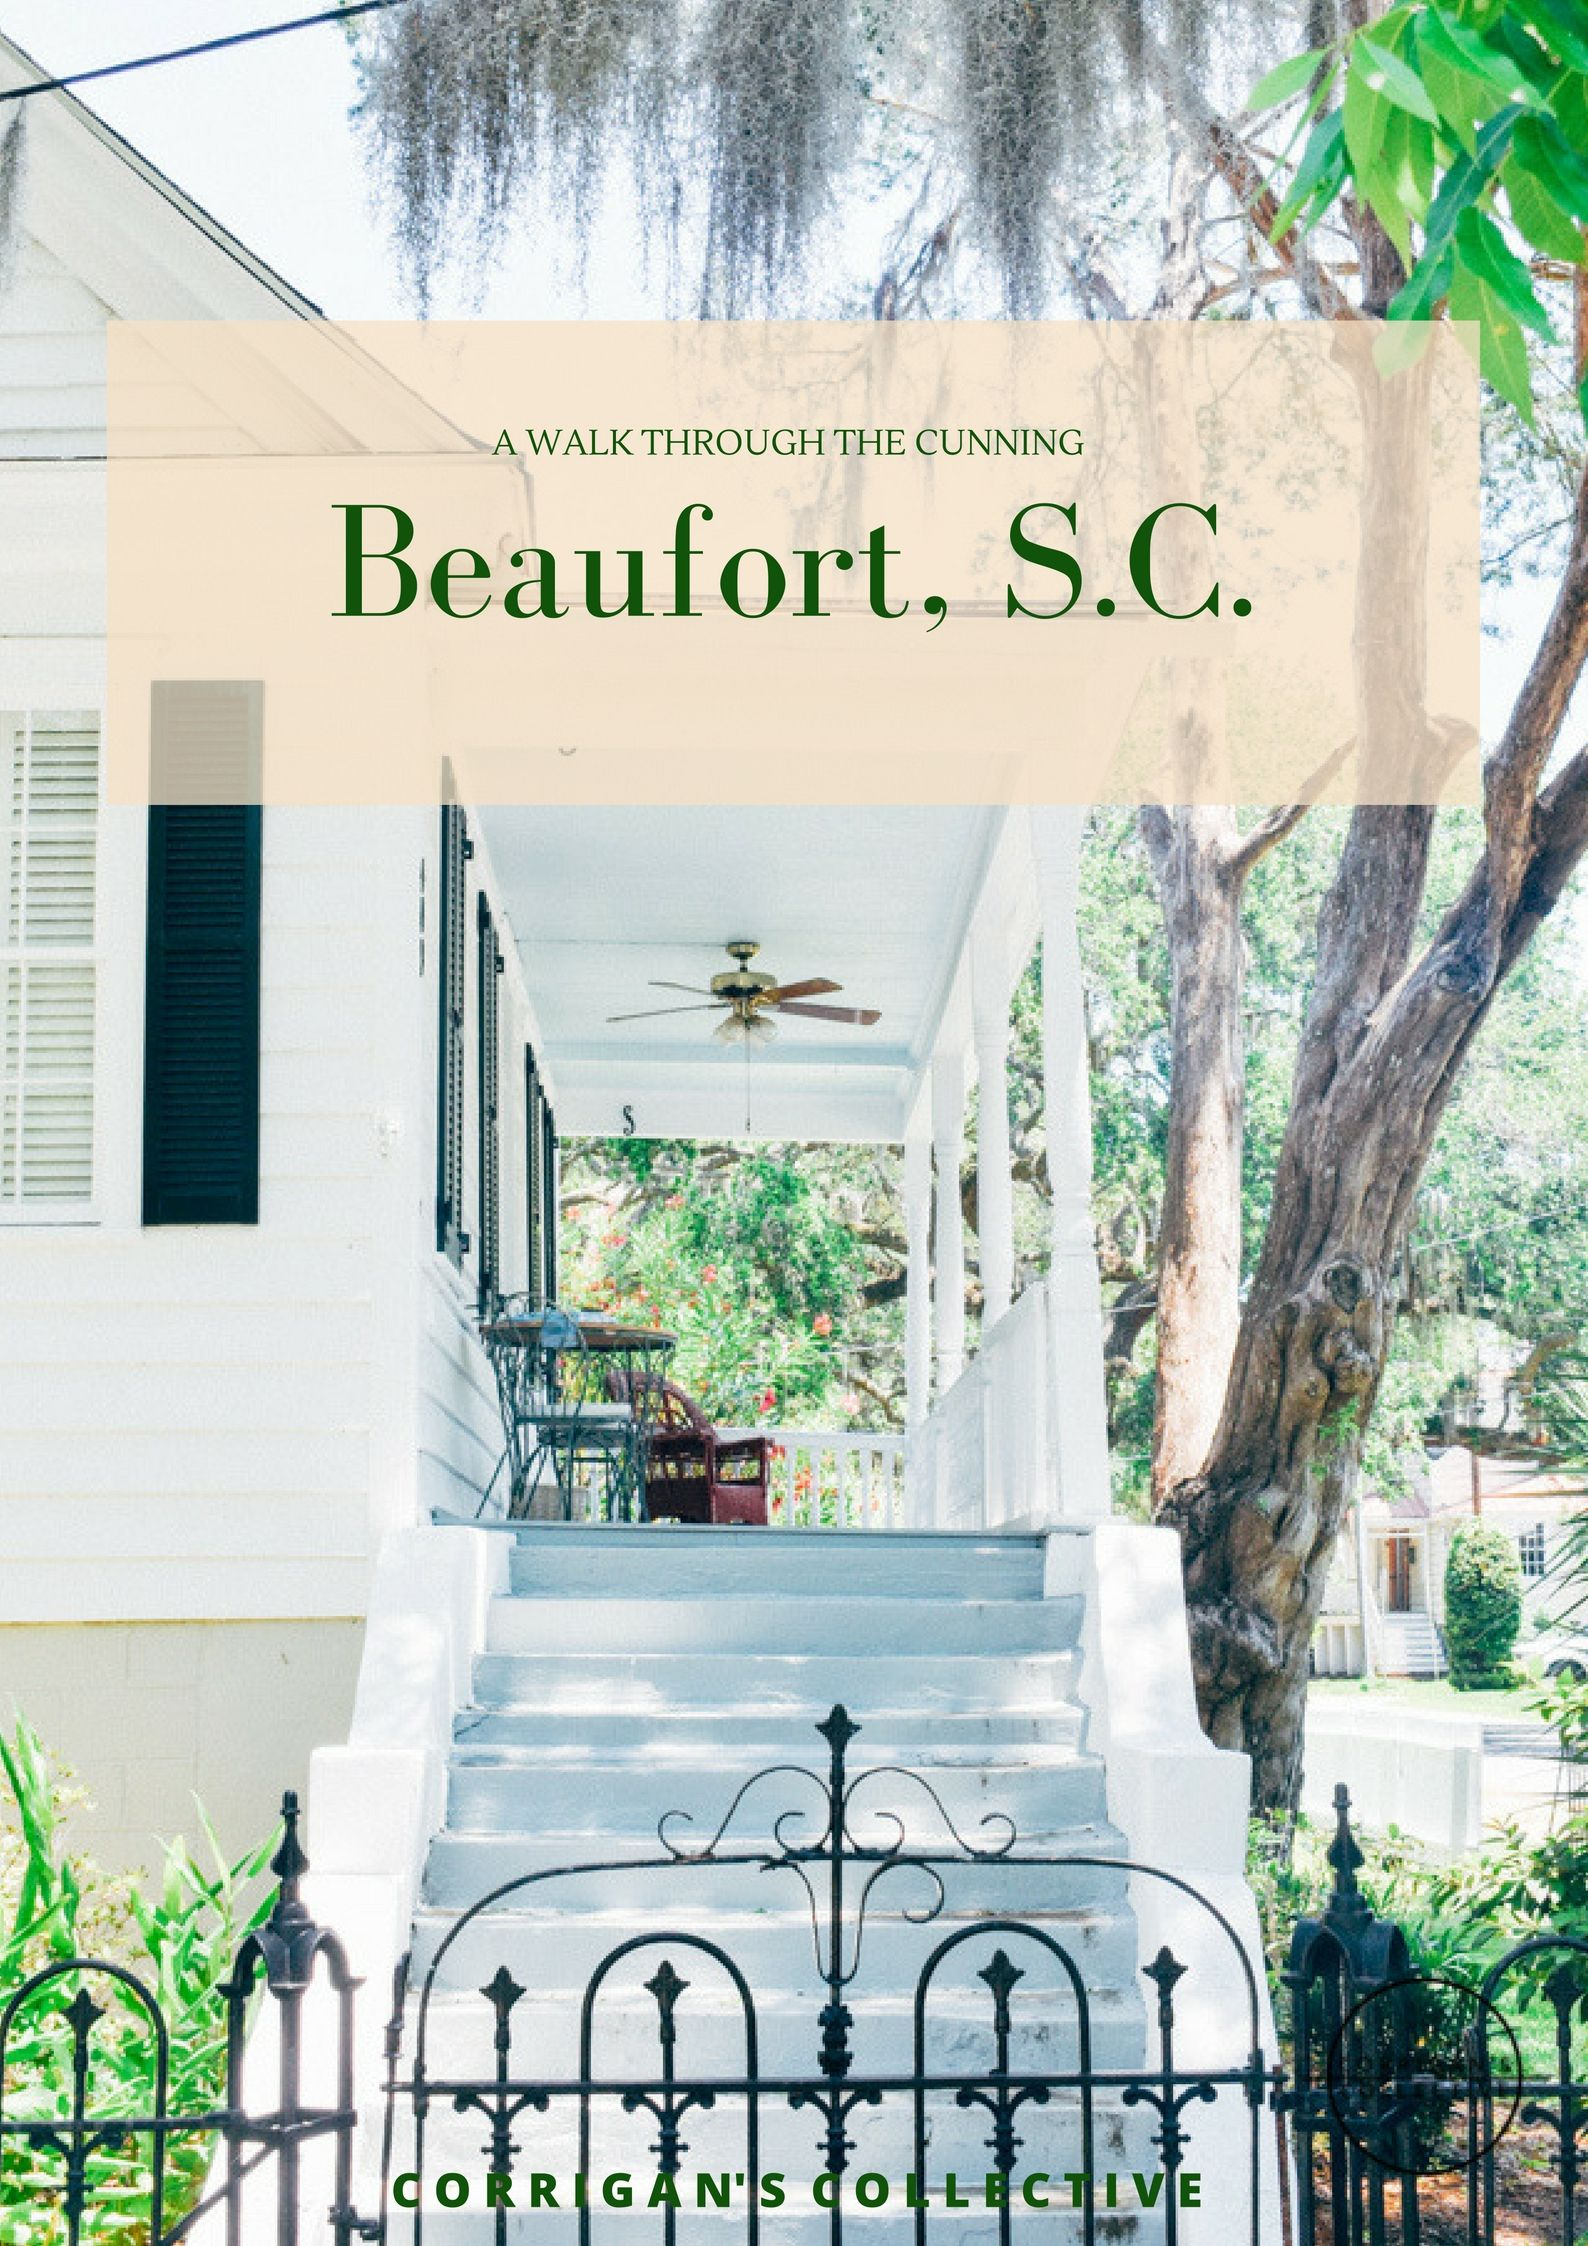 beaufort south carolina a place where clocks move even slower than those of charleston 39 s. Black Bedroom Furniture Sets. Home Design Ideas